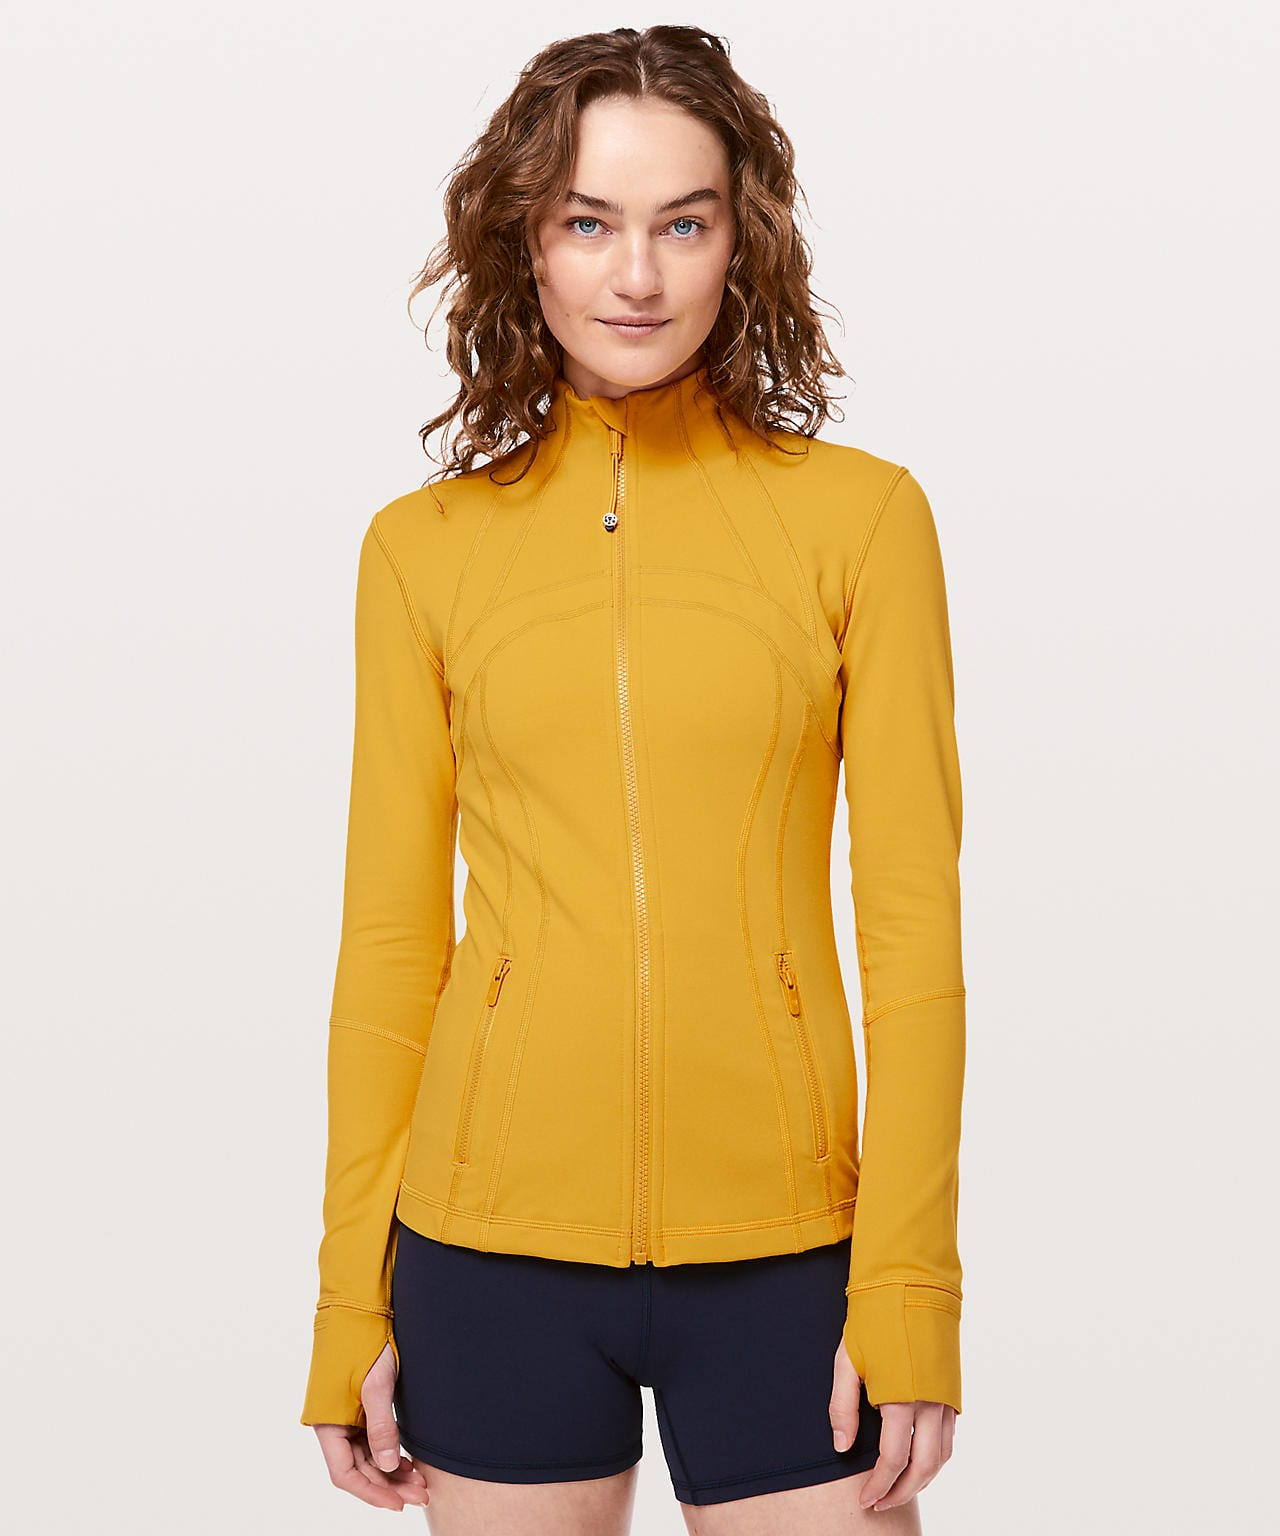 The Lululemon Upload, Define Jacket Honey Lemon, Lululemon Yellow